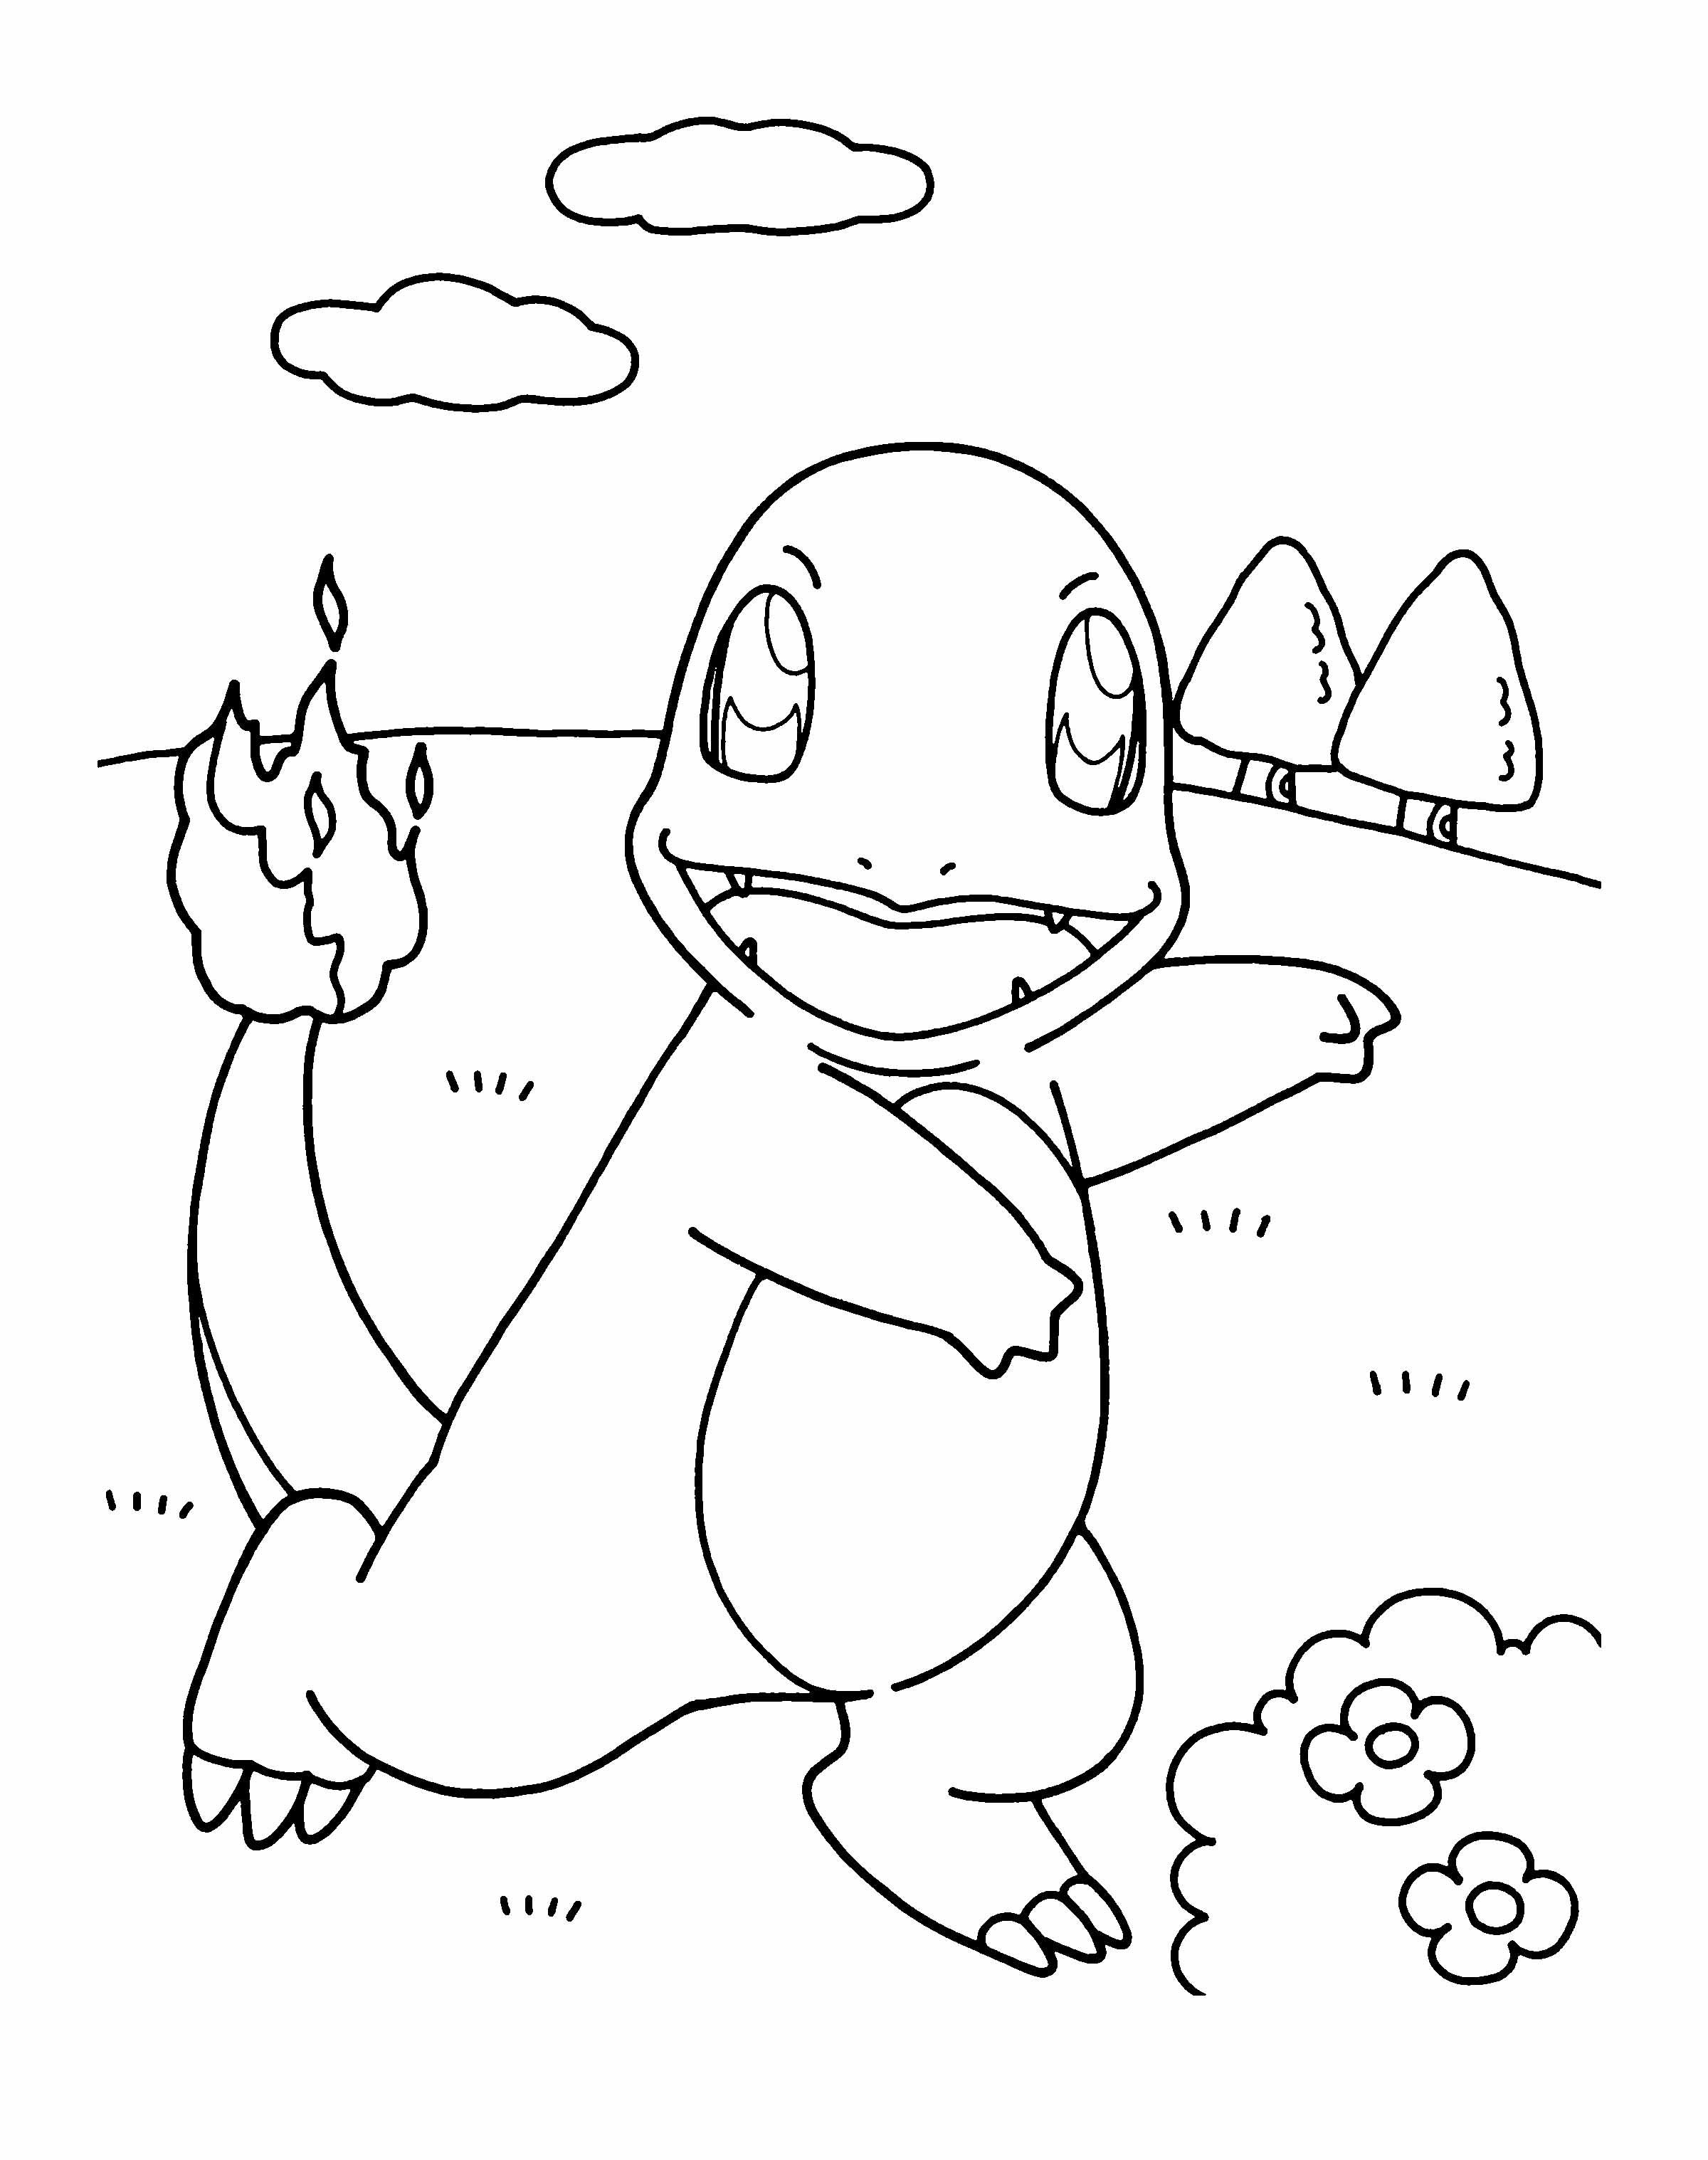 charmander CHAR!!! CHAR!!! avt+mrb=4ever Pokemon